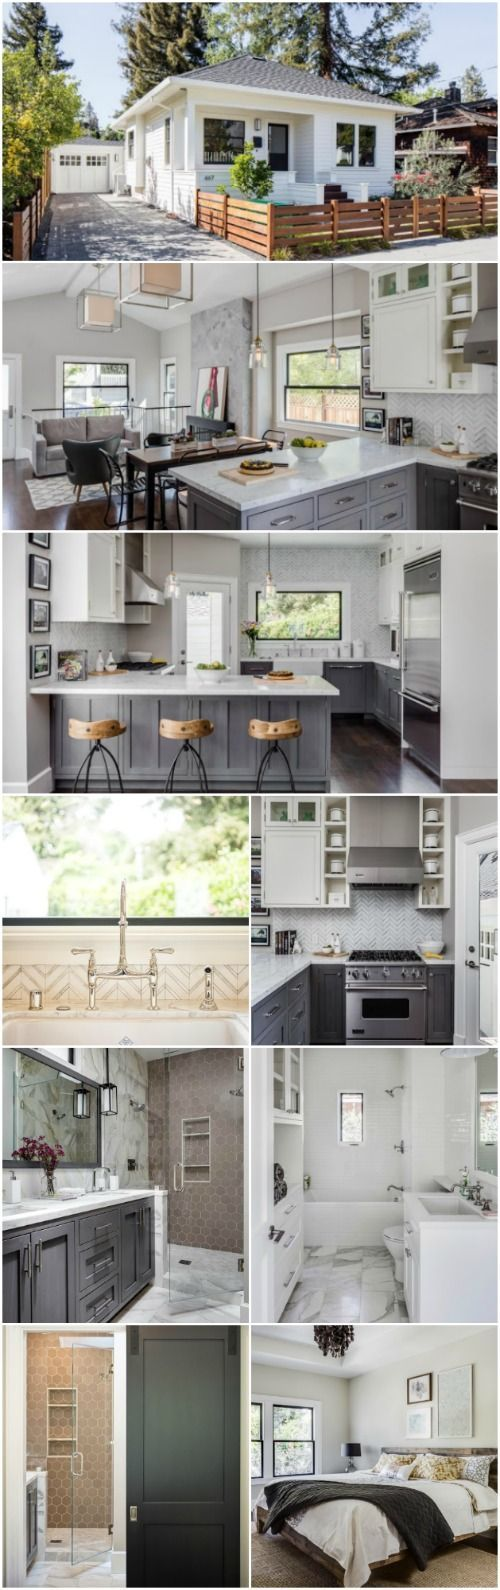 best 25 small house interior design ideas on pinterest small californian interior designer designs dreamy tiny house in napa valley